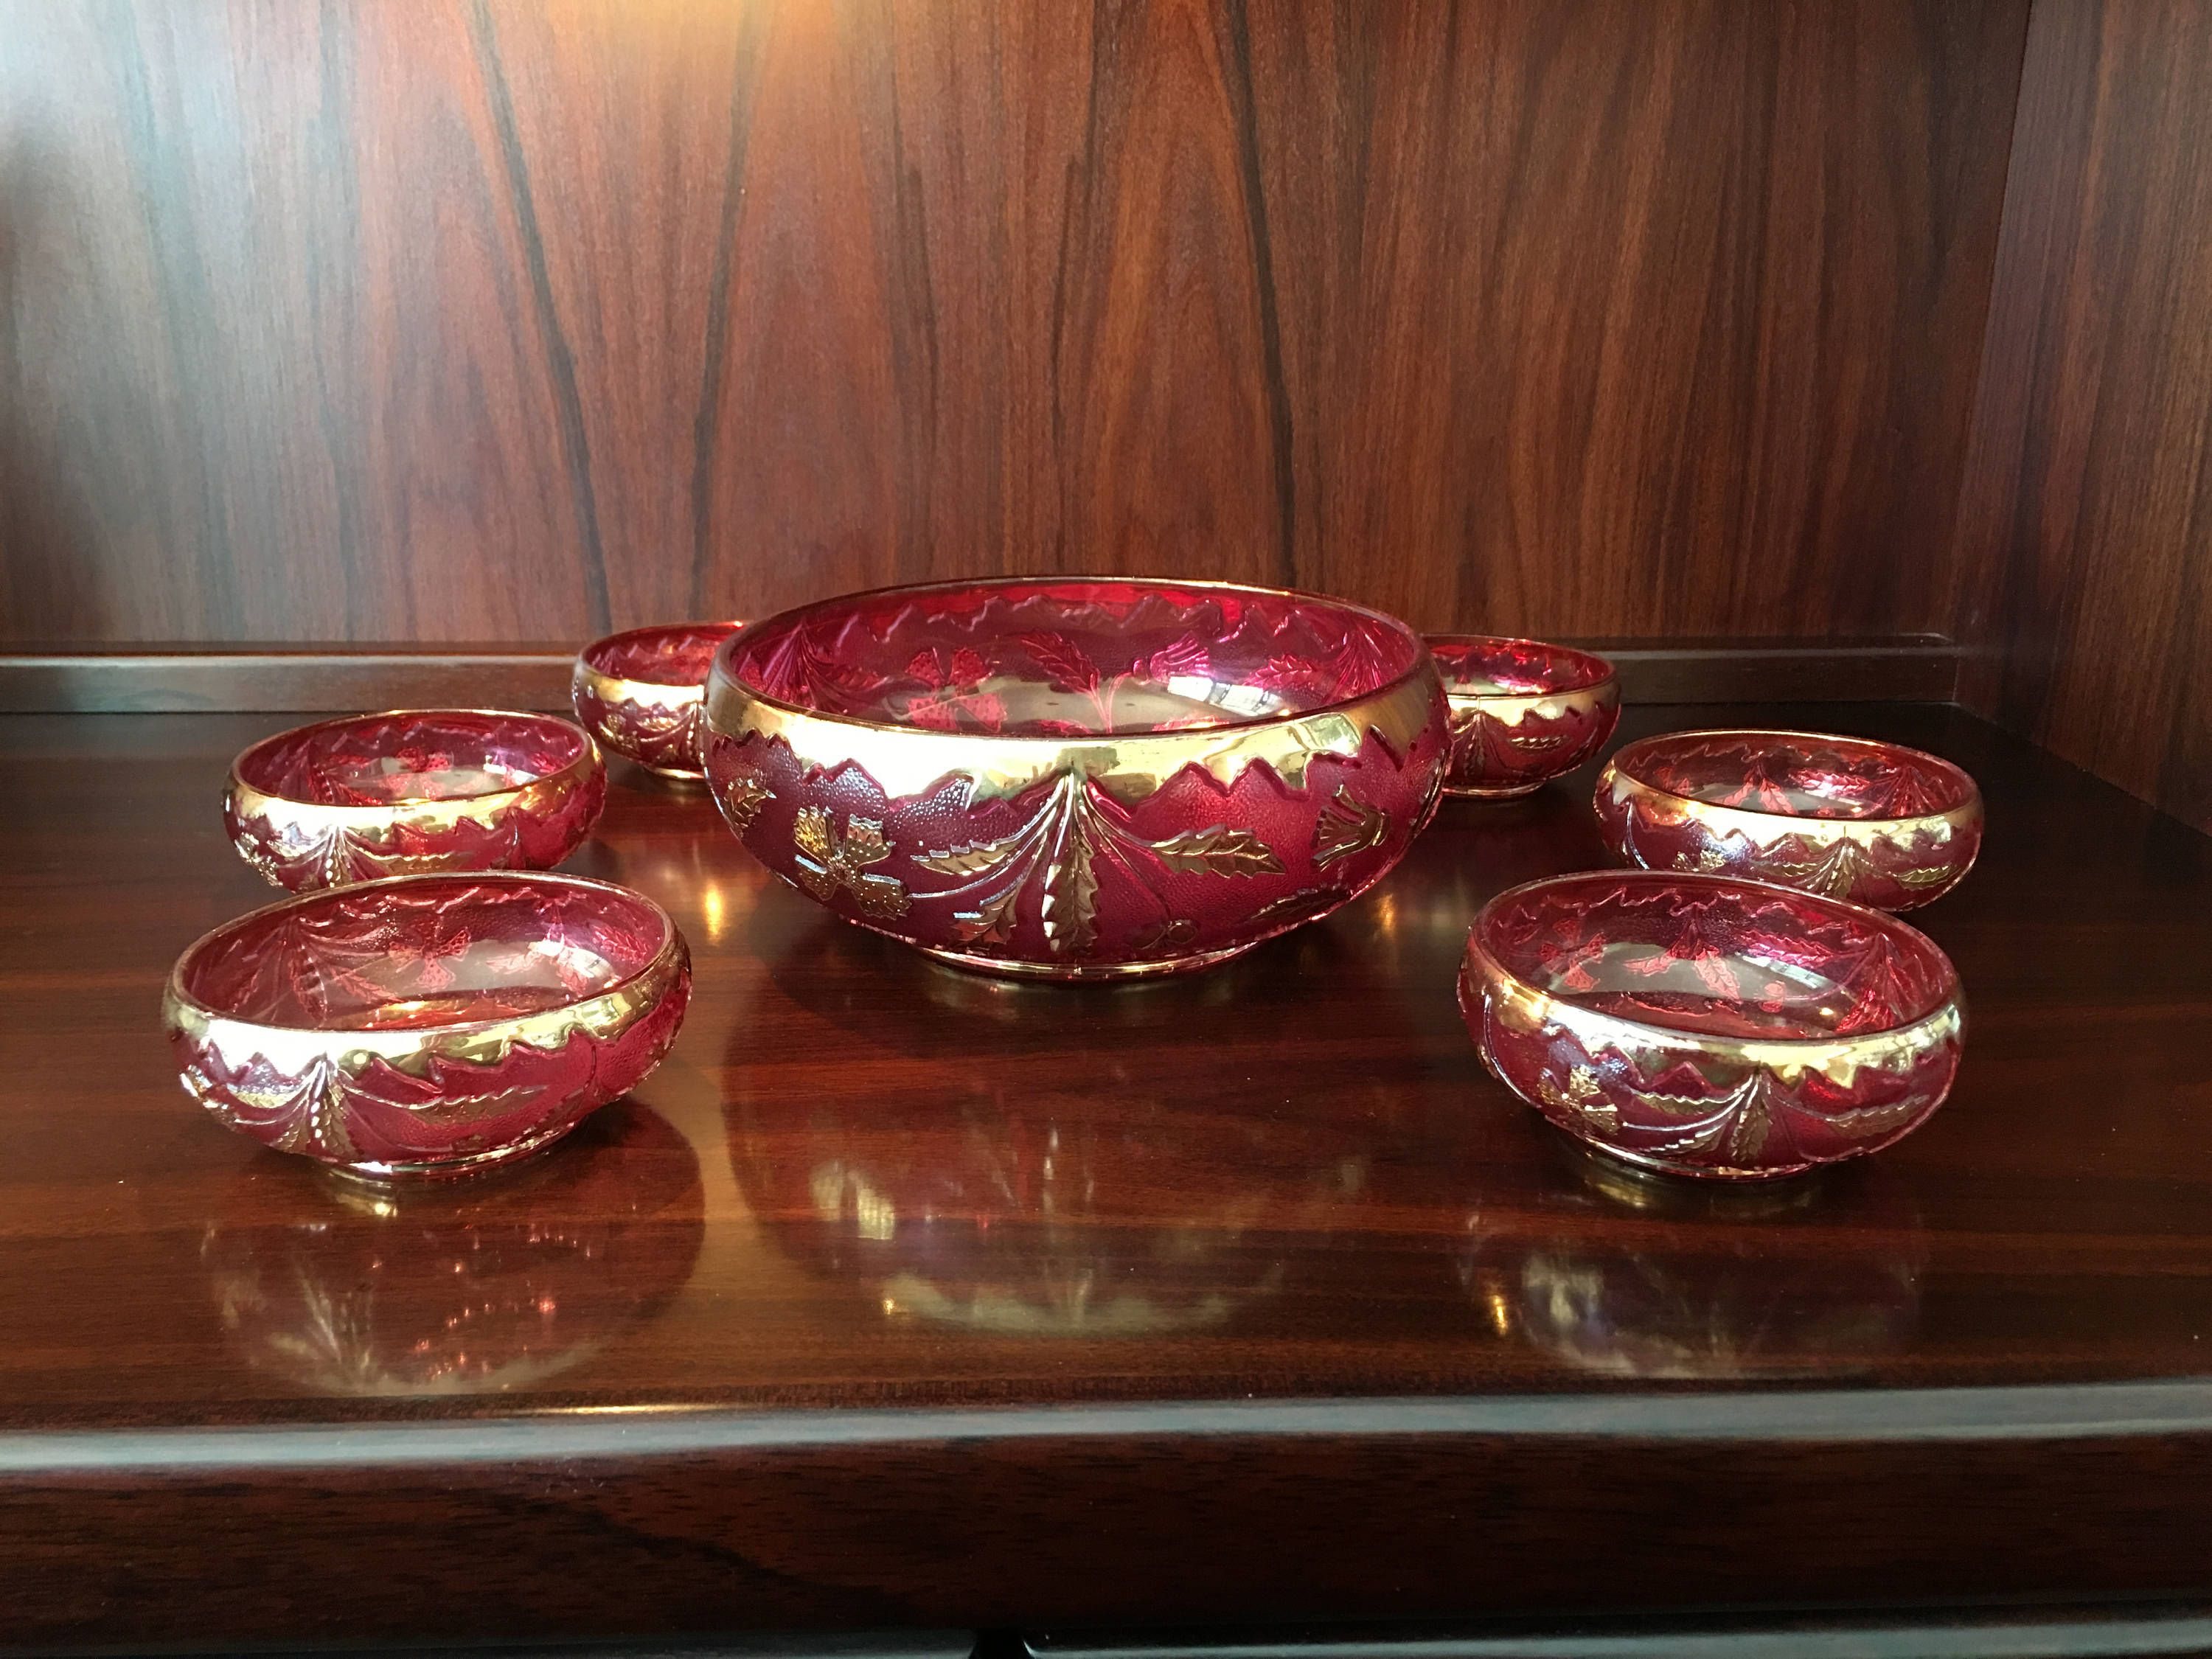 Gorgeous Delaware Ruby Stain Antique Pressed Glass Berry Bowl Etsy Berry Bowl Bowl Set Antique Glass